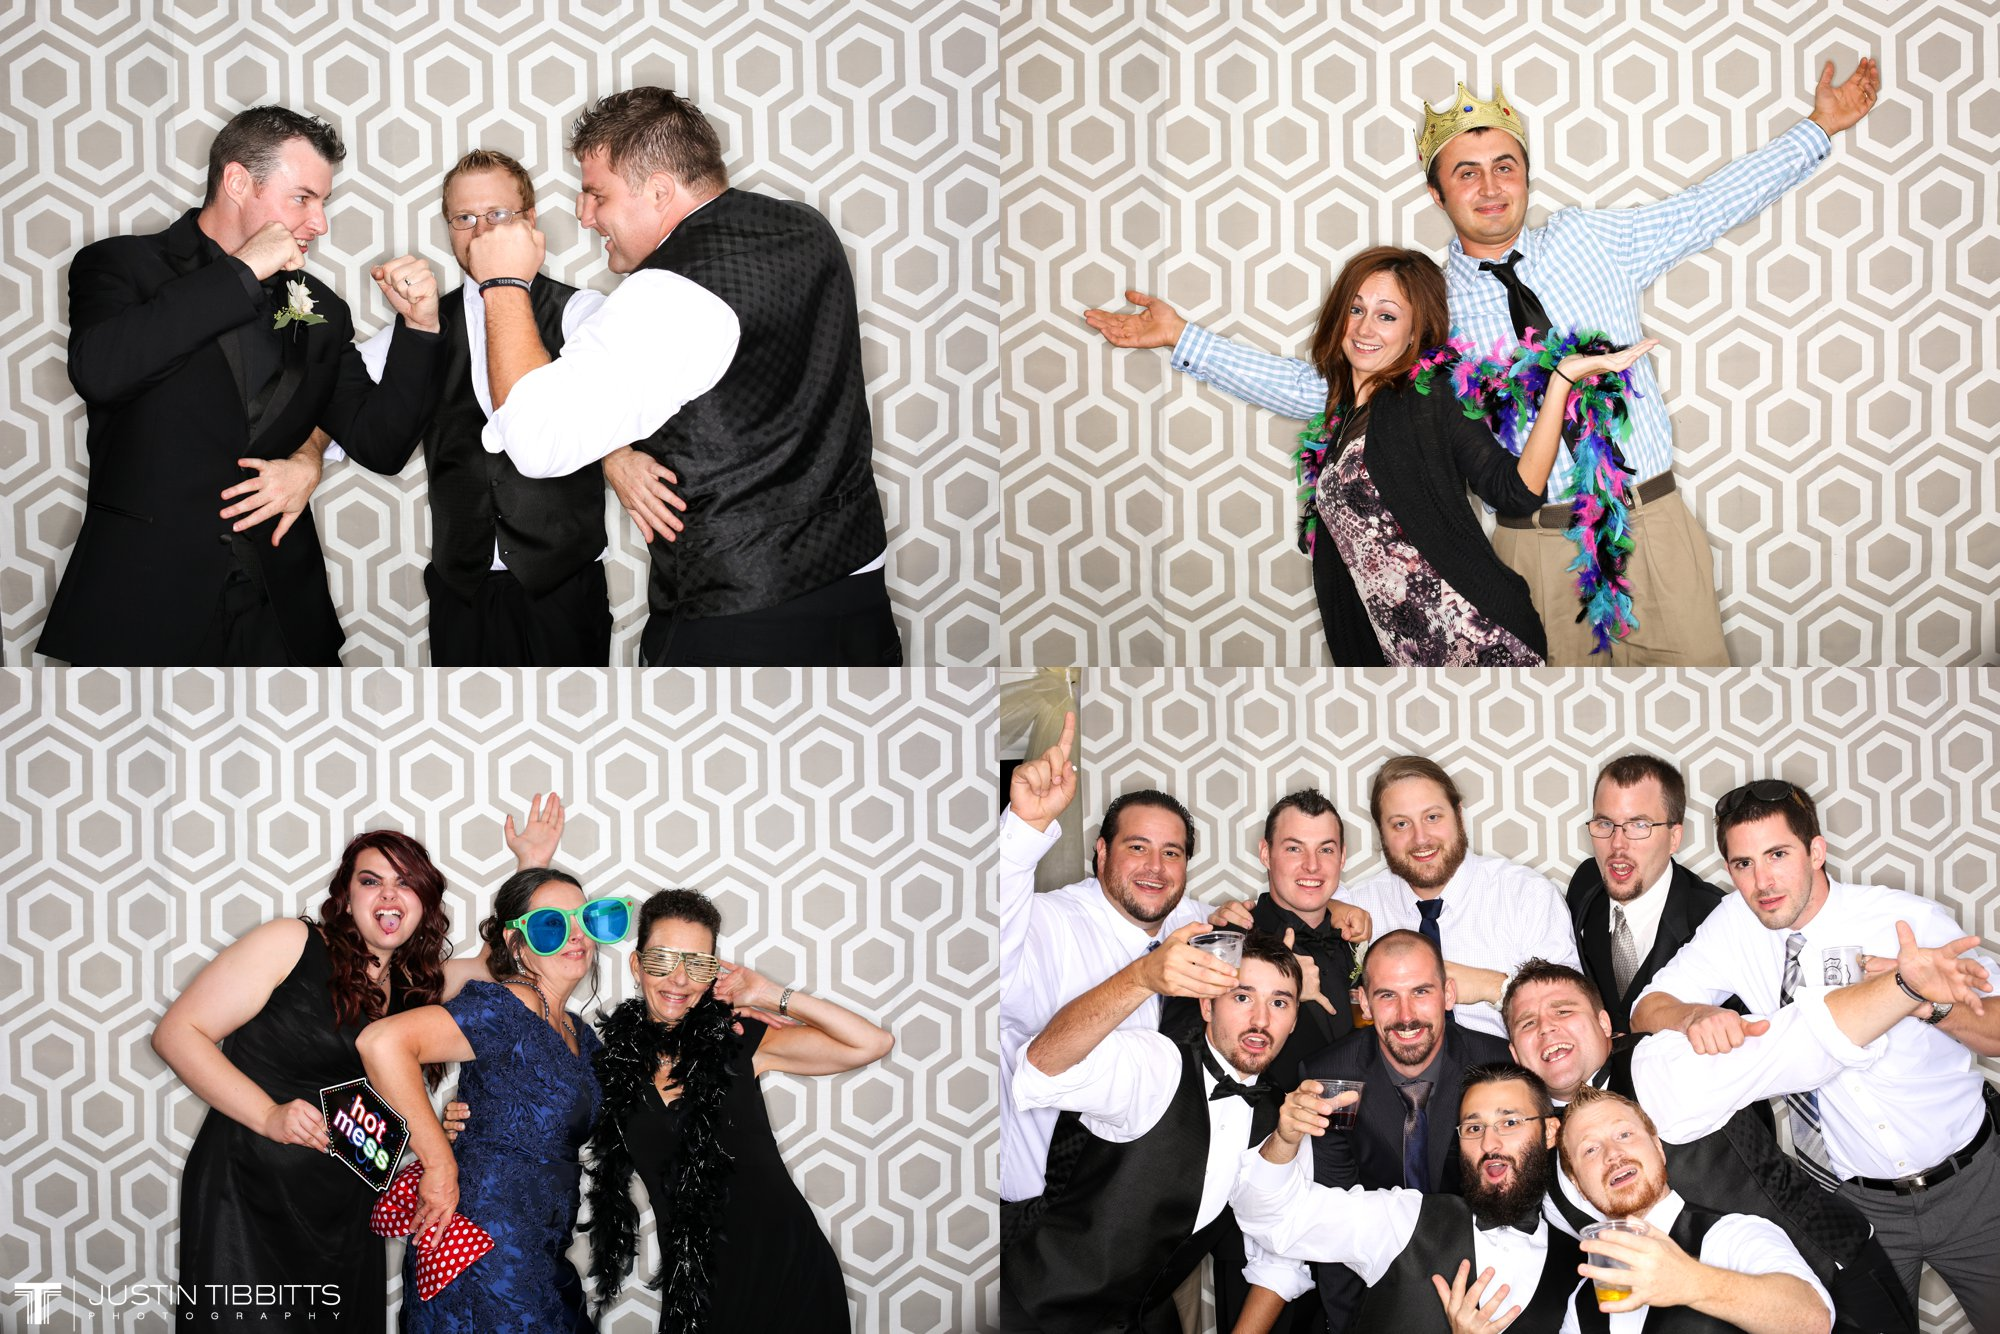 Justin Tibbitts Photography Mr and Mrs Zaffino Deannas Bridal Wedding Photo Booth-29